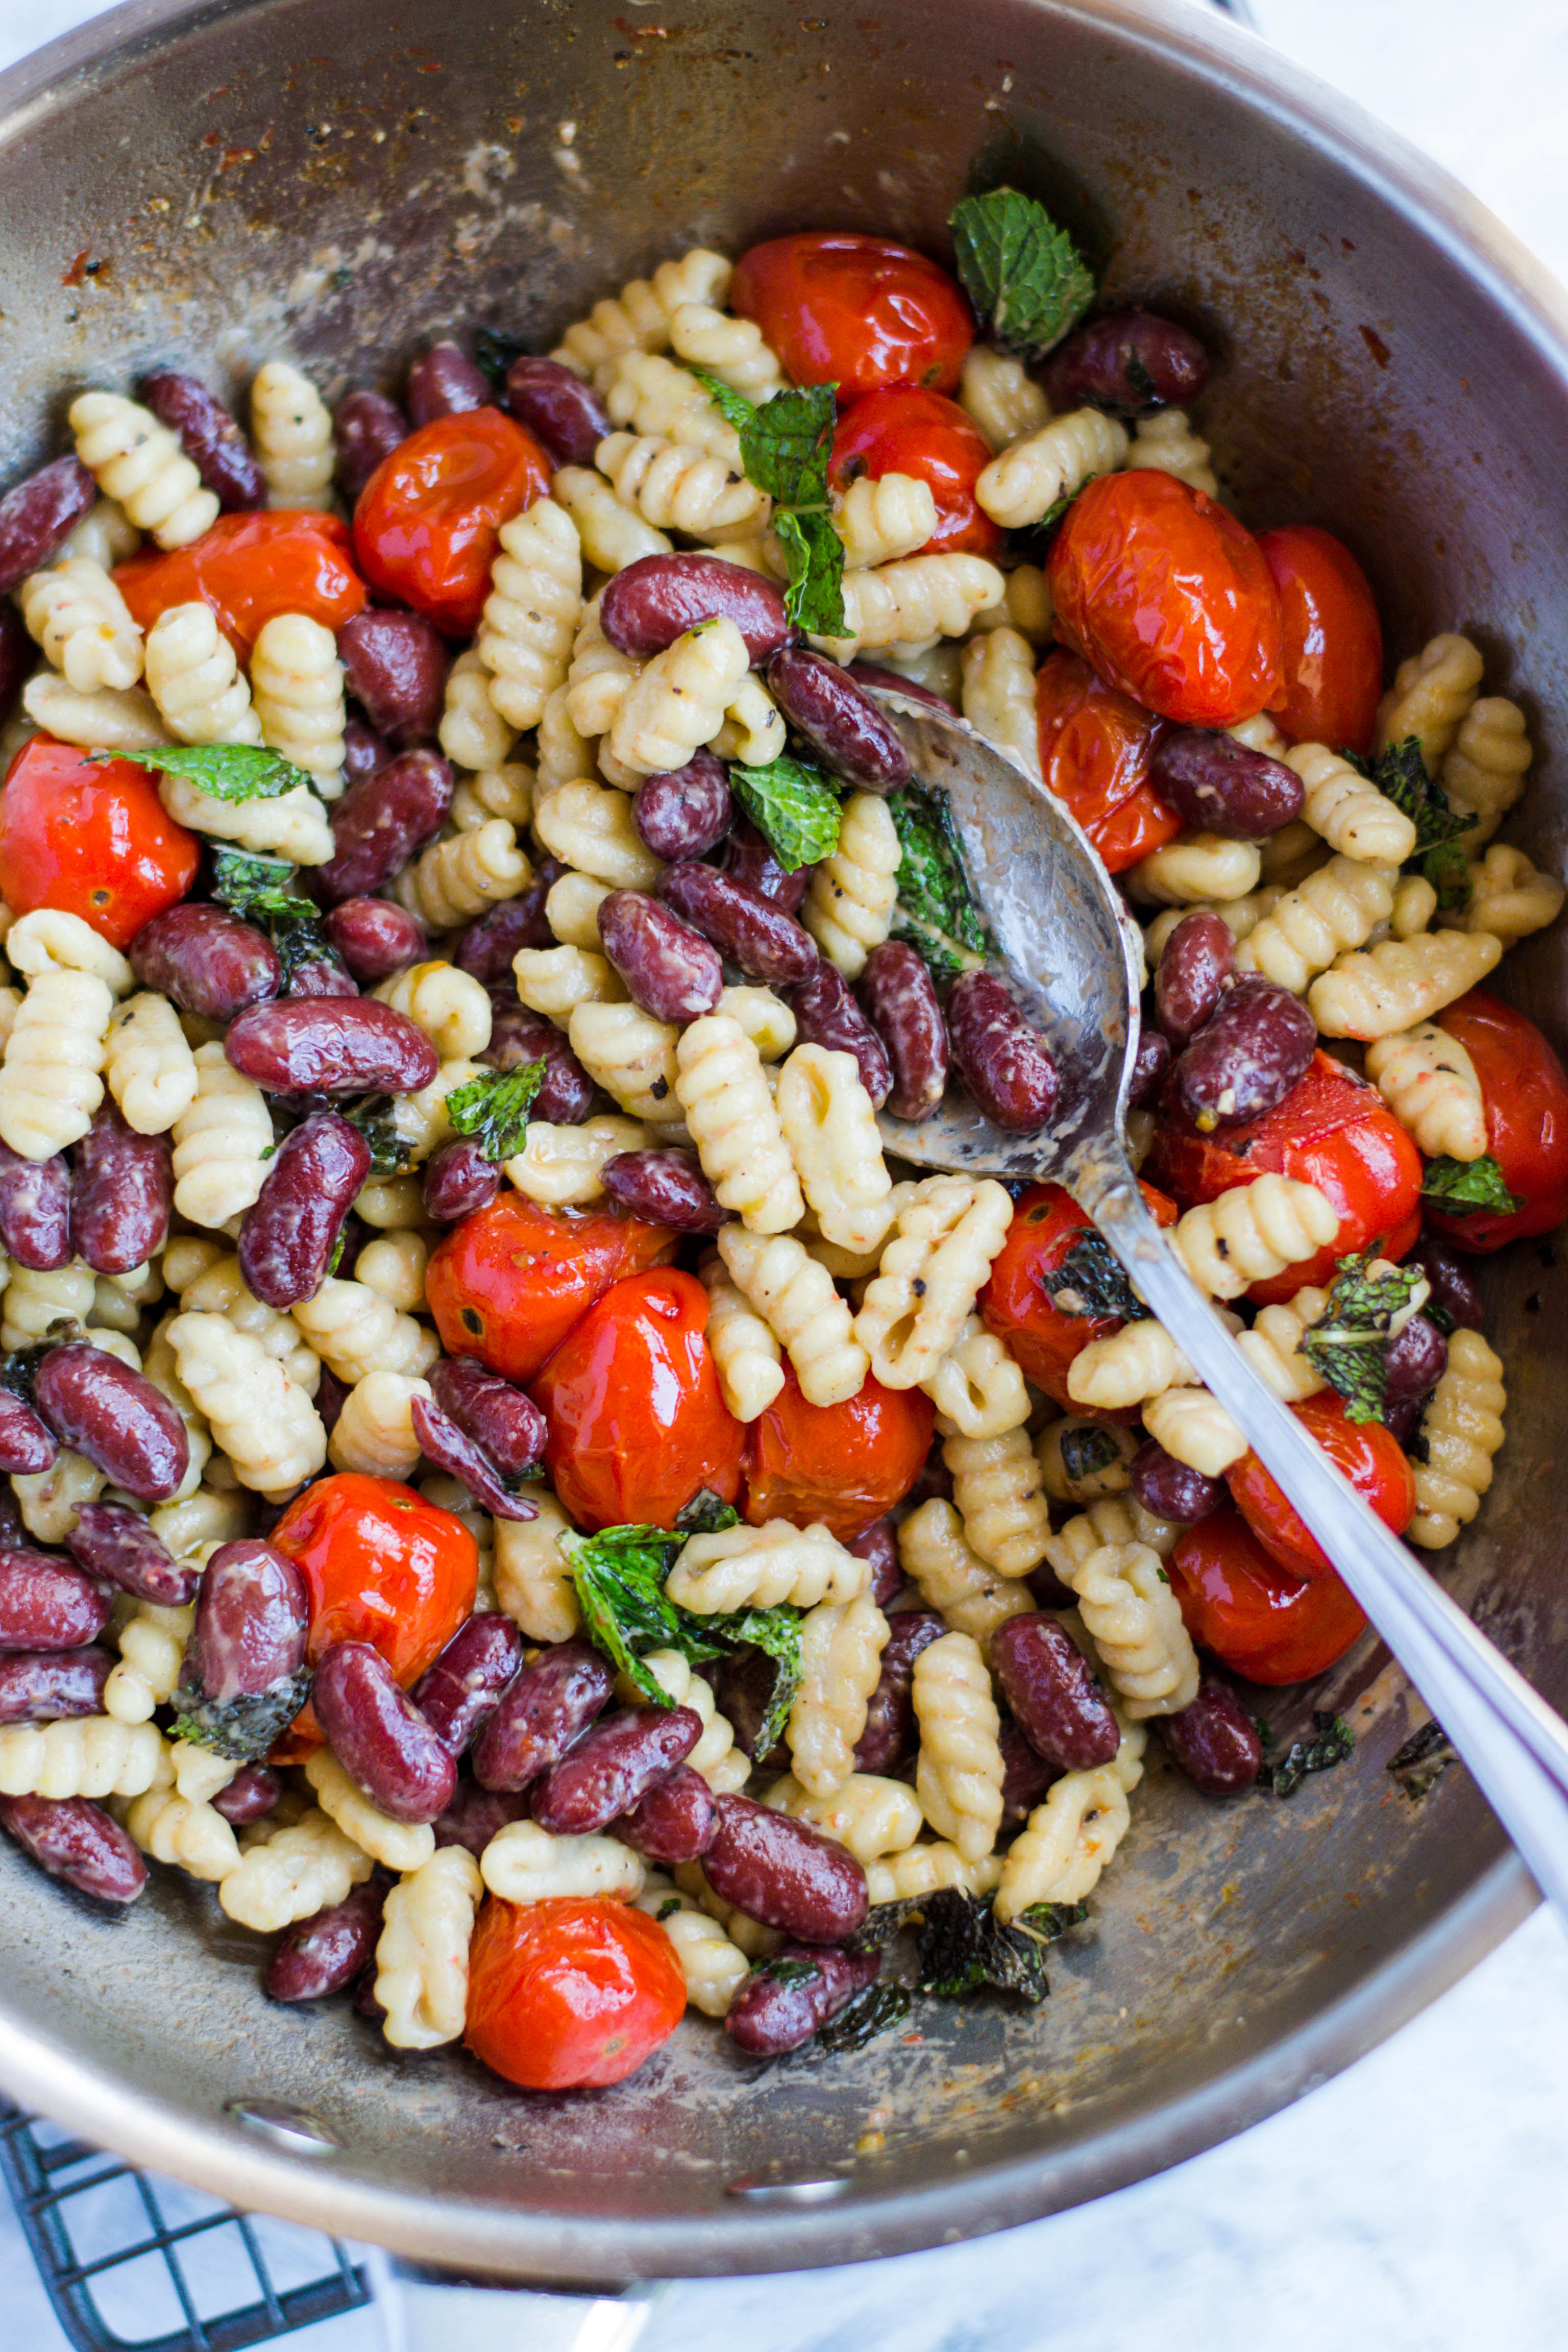 Pasta with beans, tomatoes, and cheese